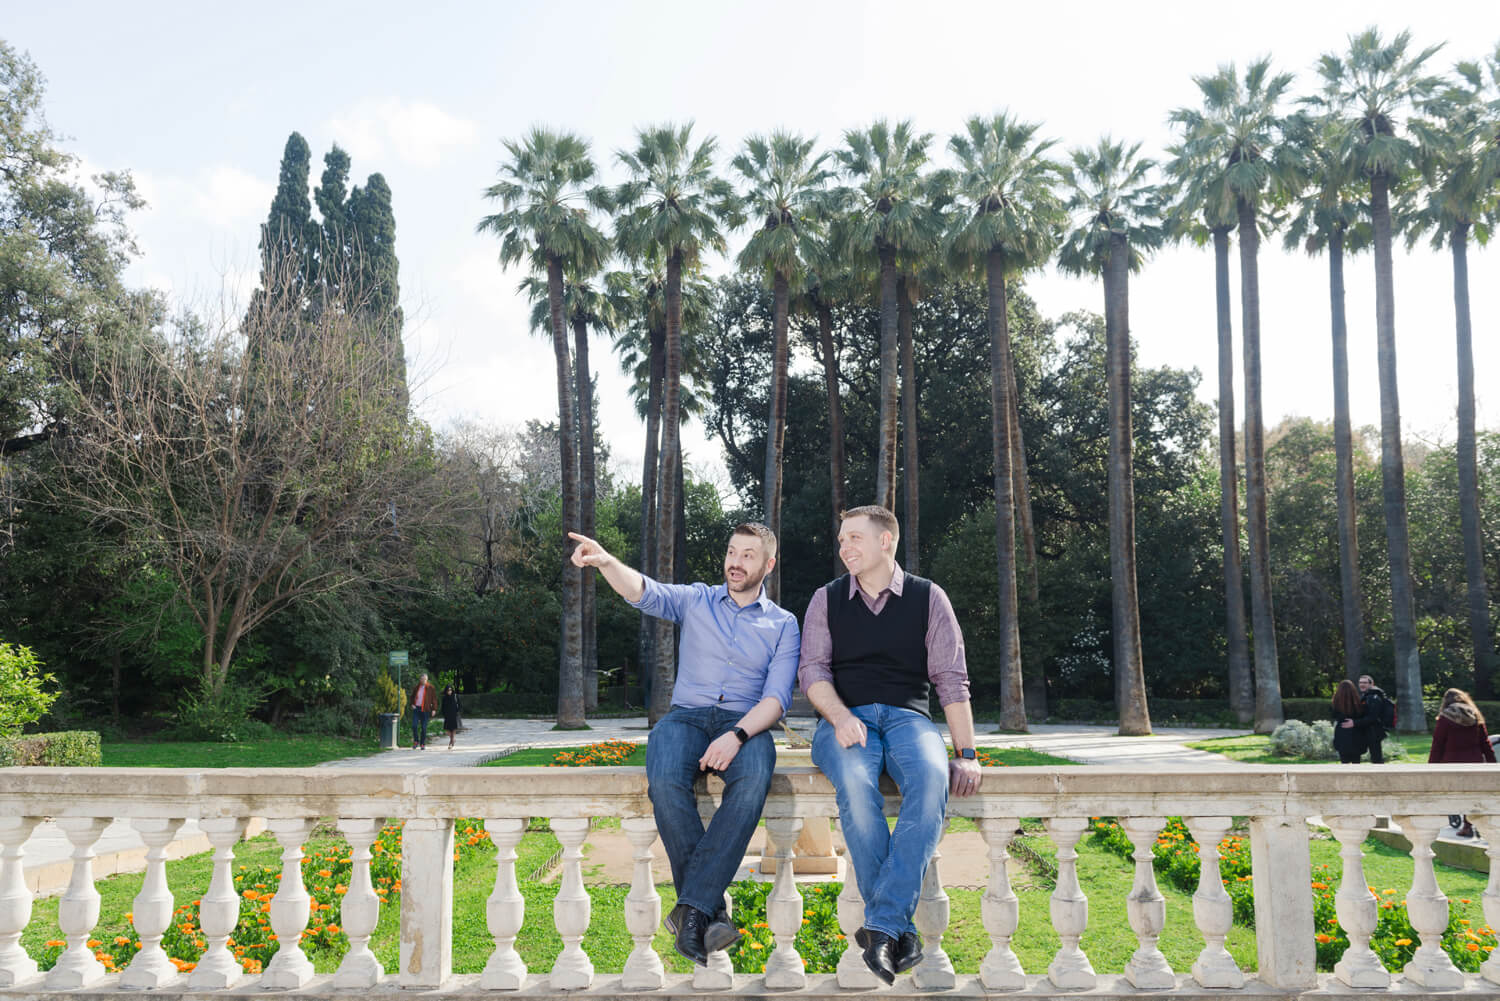 A gay honeymoon photoshoot in Athens, Greece